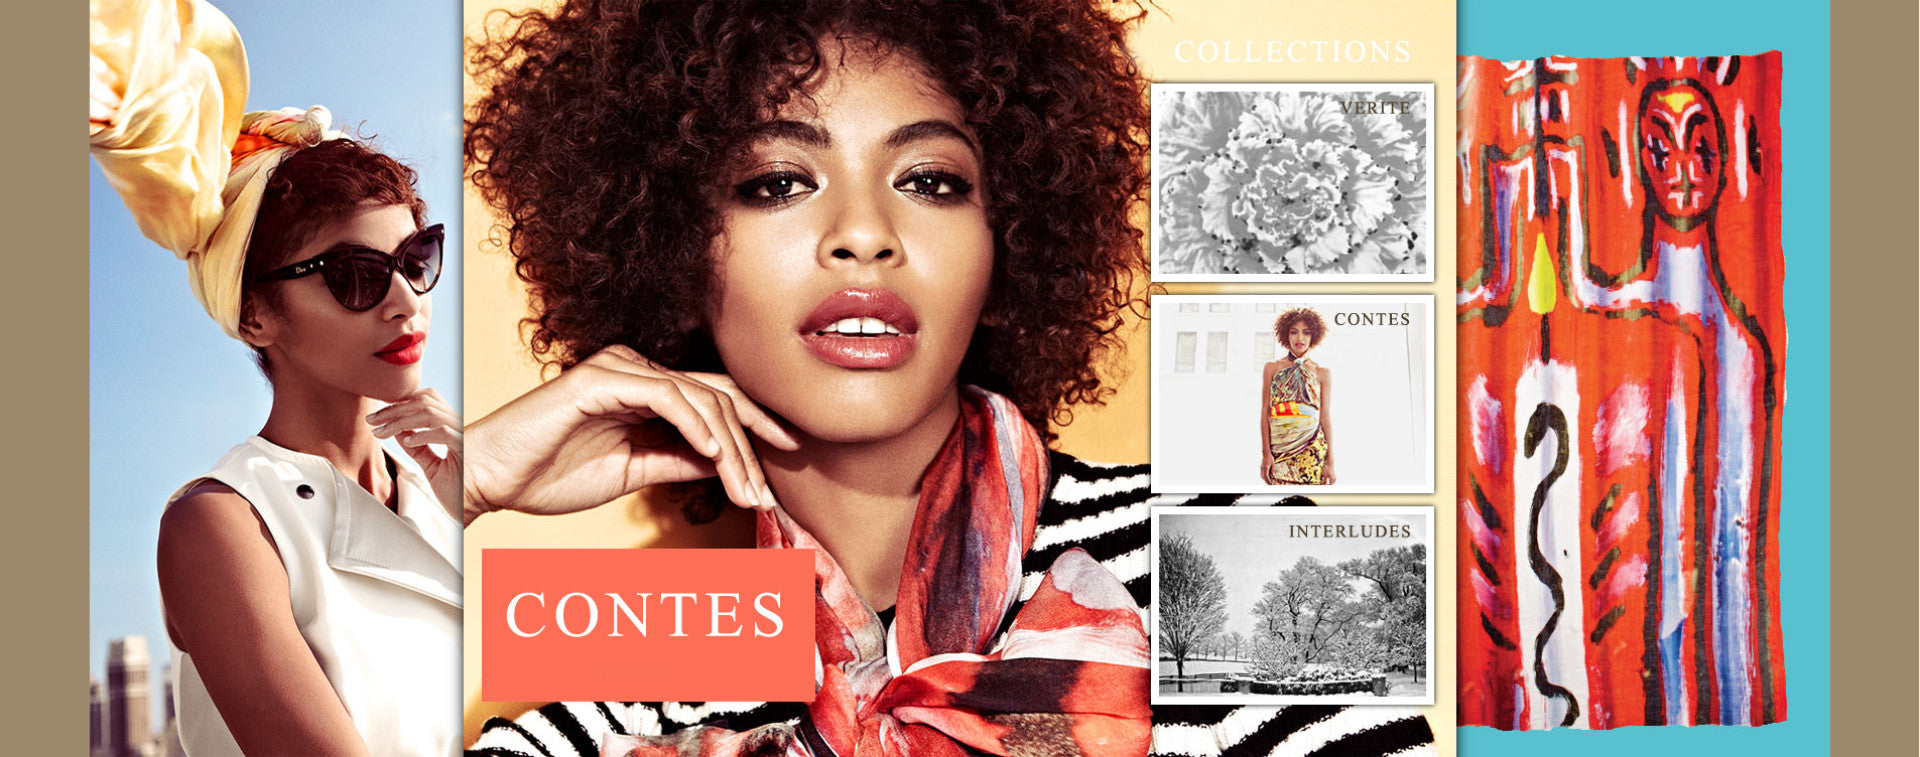 Contes - The Sheila Johnson Collection